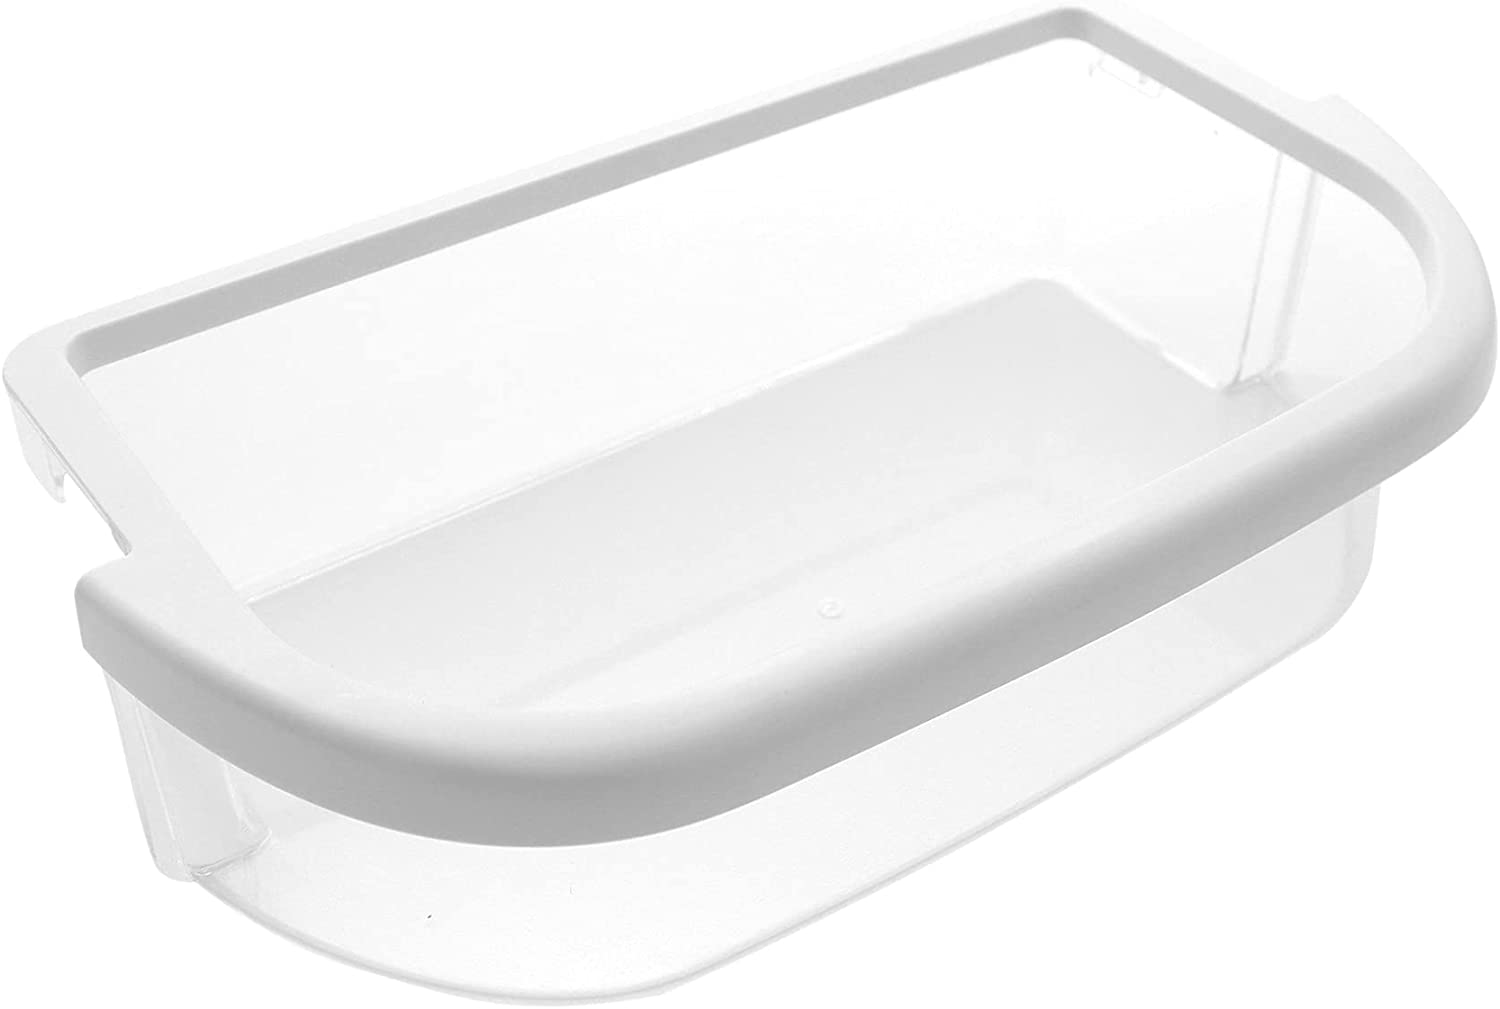 Lifetime Appliance W10289497 Manufacturer Colorado Springs Mall direct delivery Door Shelf Compatible Whir Bin with